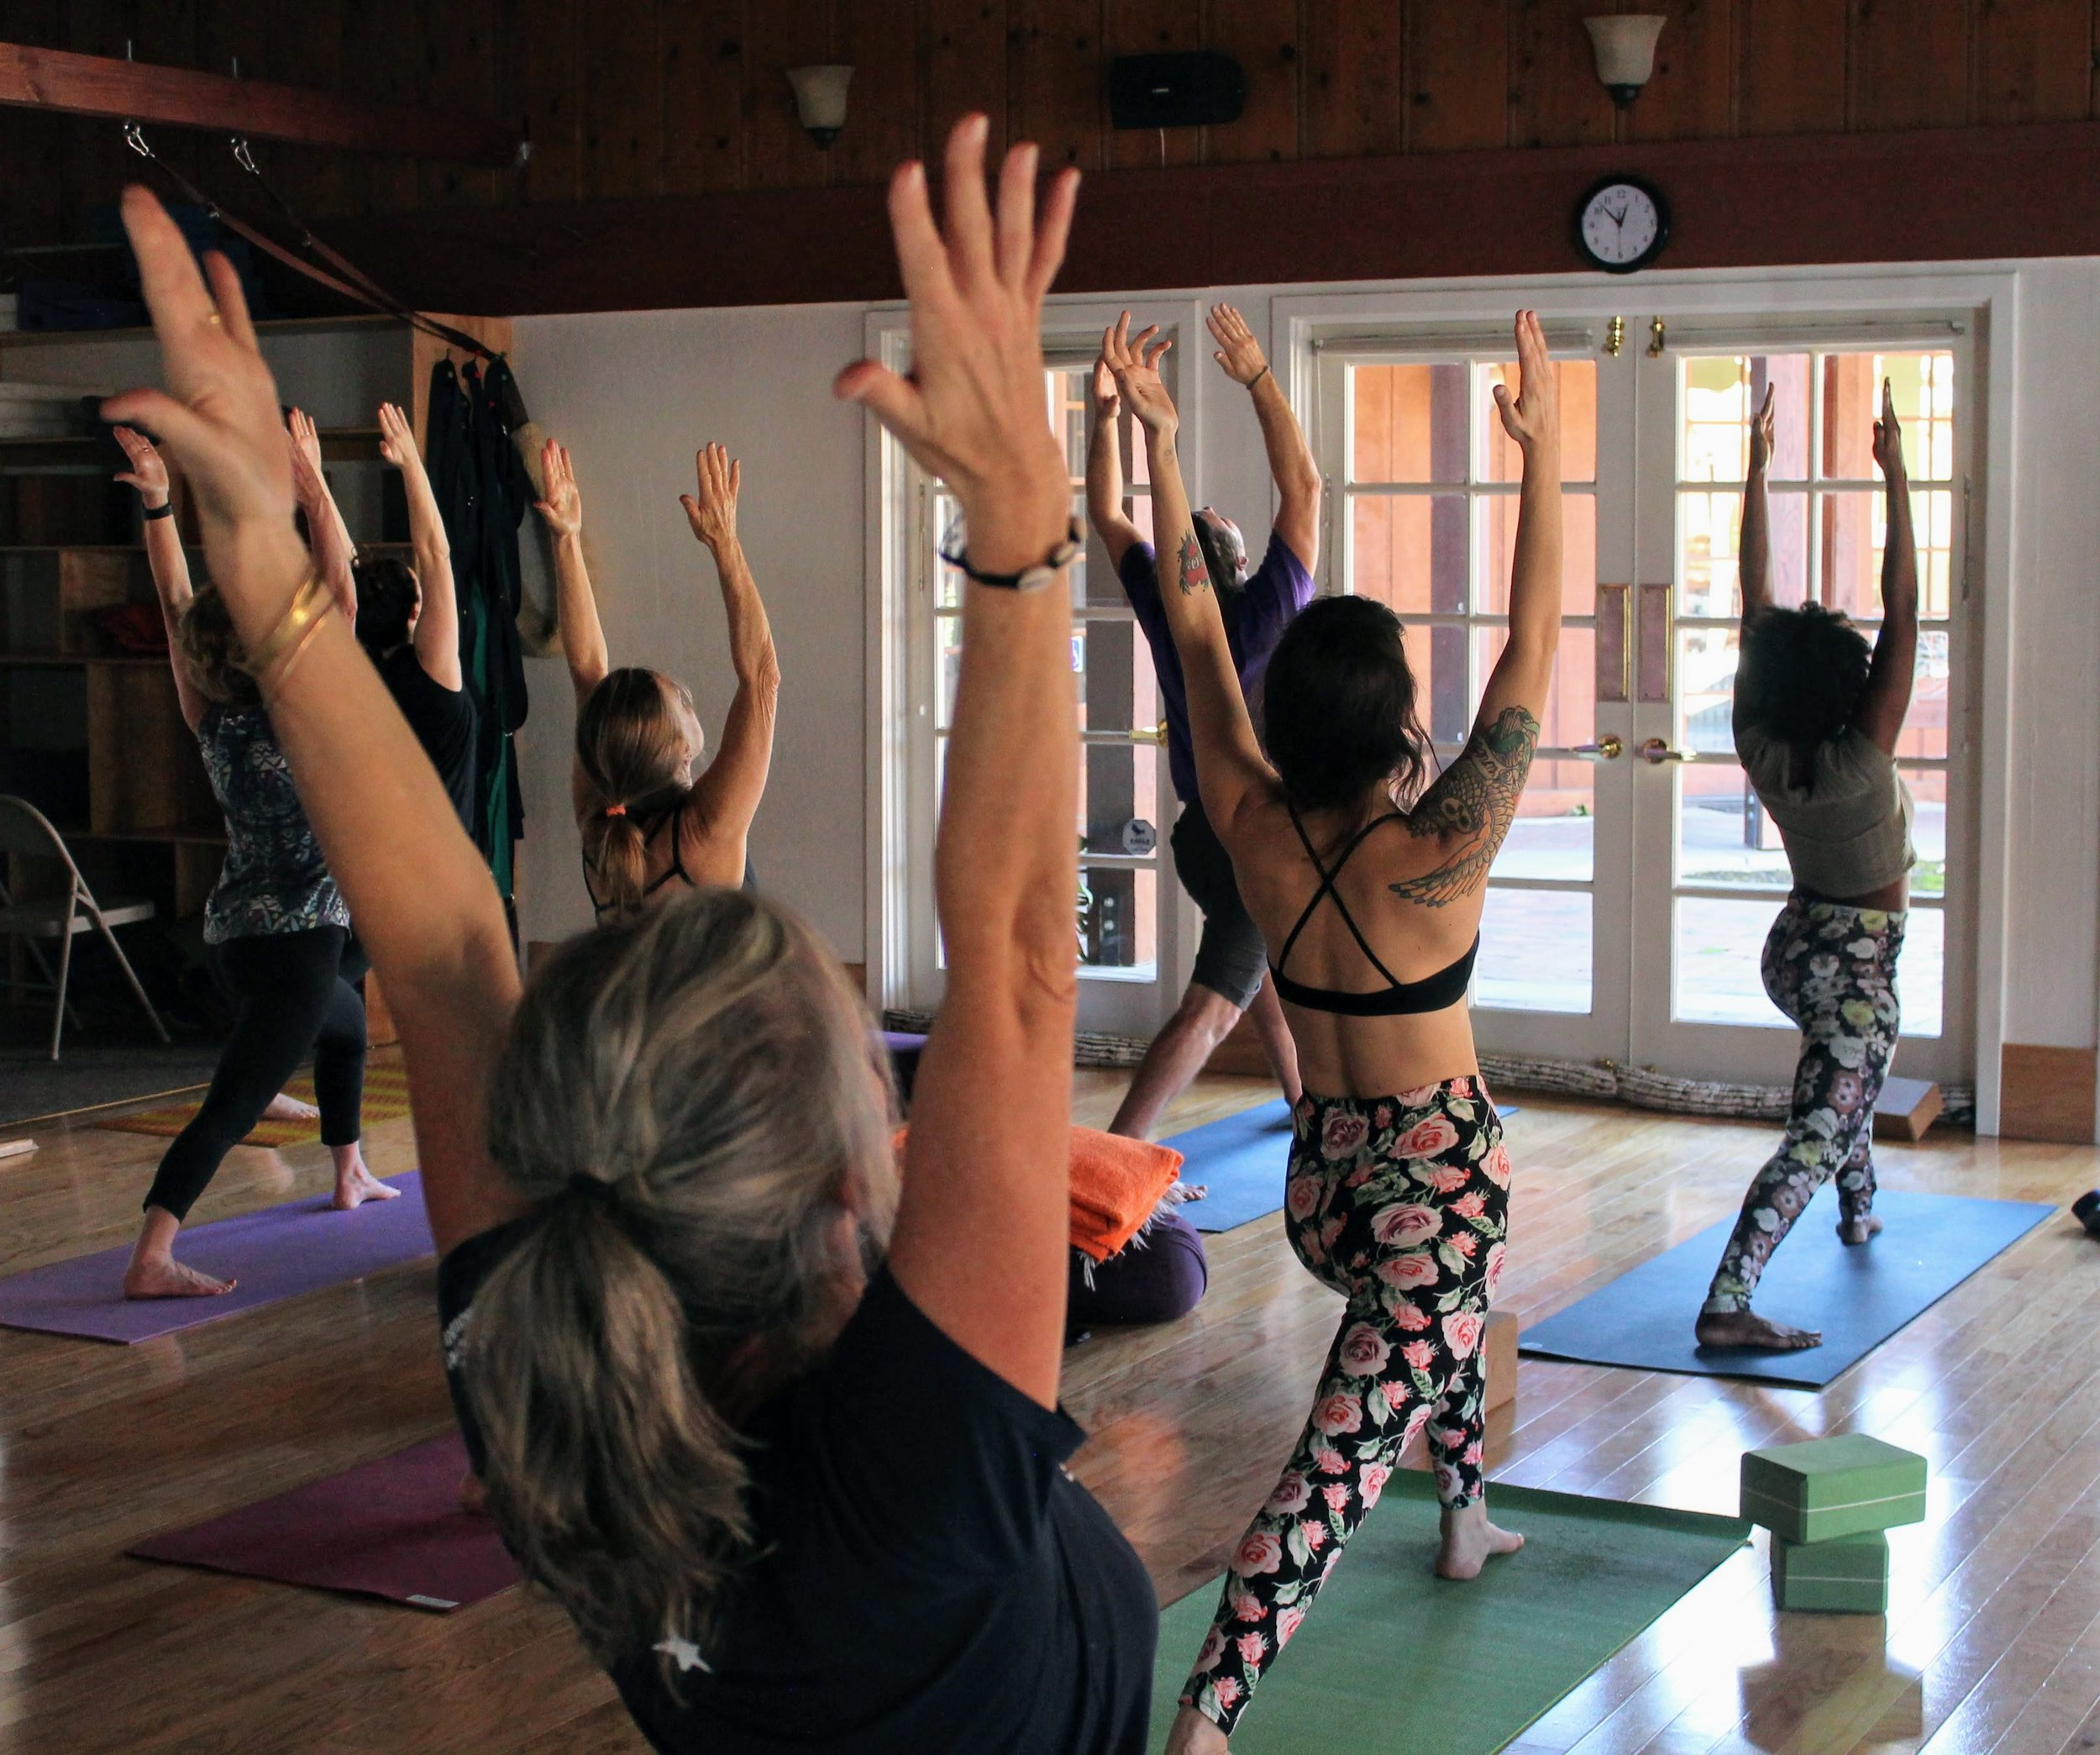 Ready for yoga to transform your life? - Tom is ready to share his knowledge and years of experience with you.